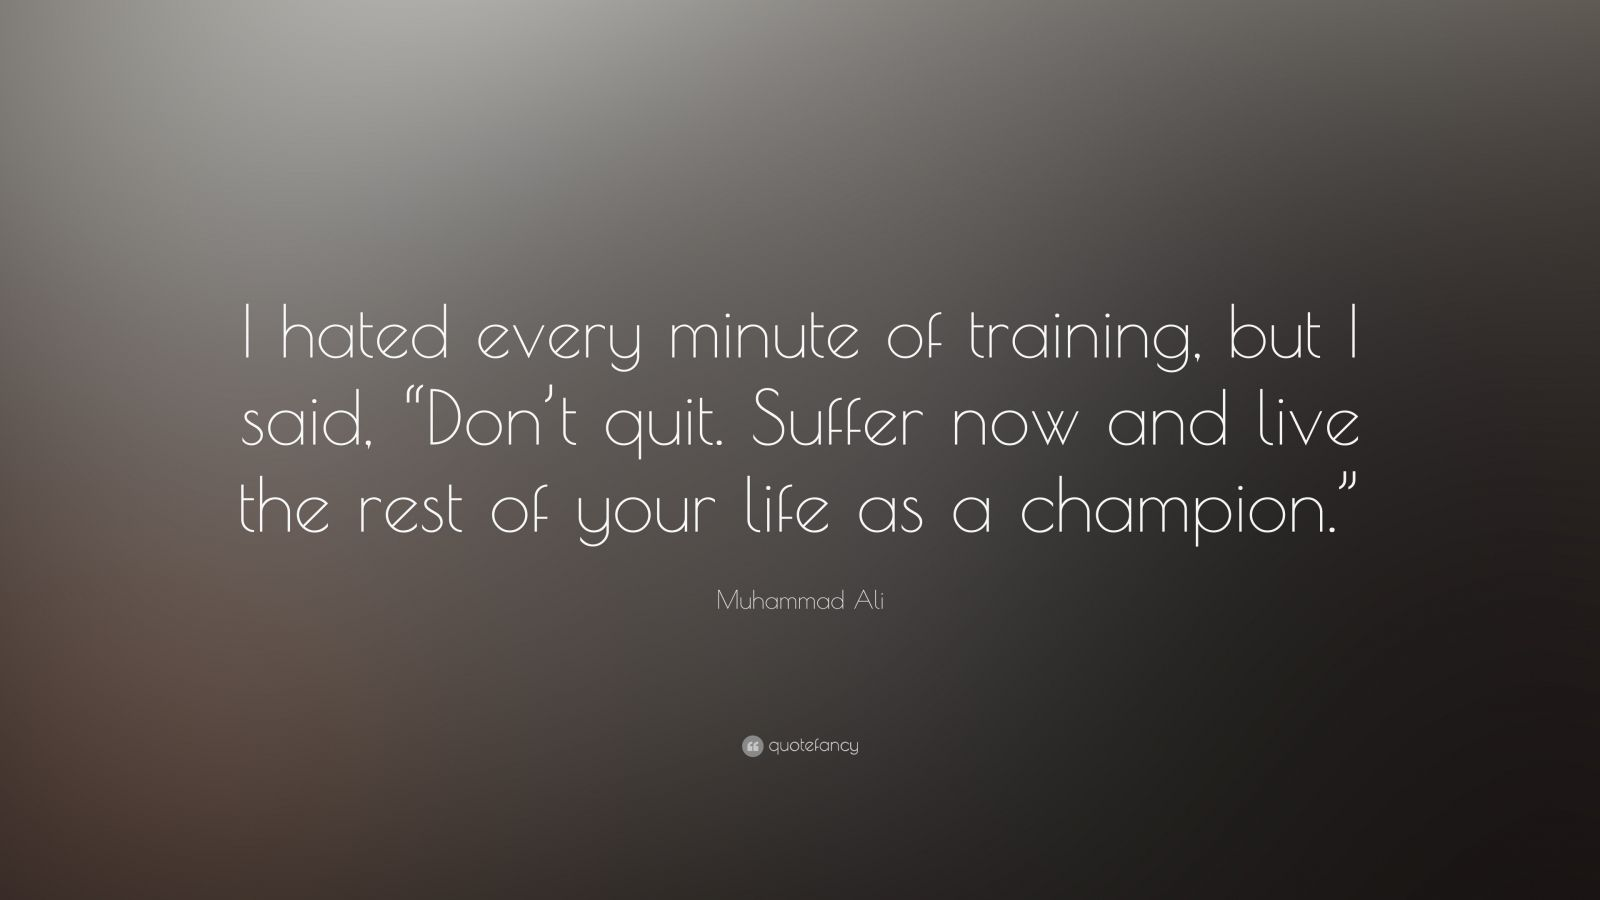 """Muhammad Ali Quote: """"I hated every minute of training, but I said, 'Don't quit.  Suffer now and live the rest of your life as a champion'."""""""